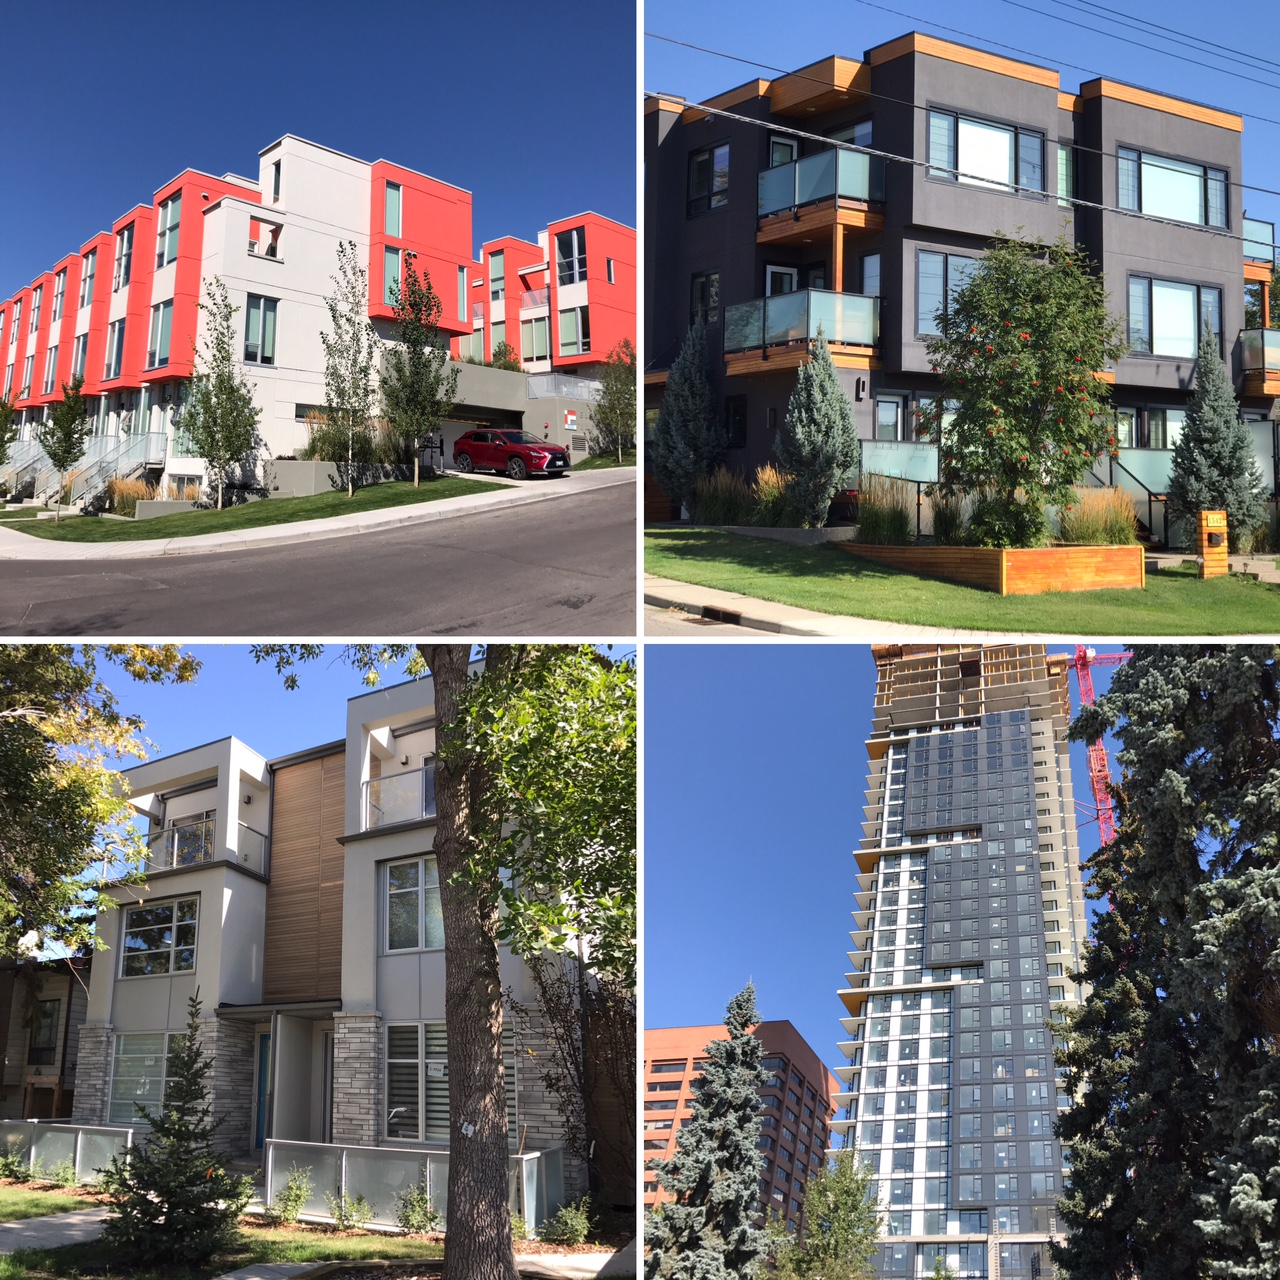 Calgary boast one of the most diverse inner city living options of any major city in North America, from mansions to cottages, from high-rises to mid-rises, from duplexes to row homes. There is new construction on almost every other block within 10 km of downtown Calgary.